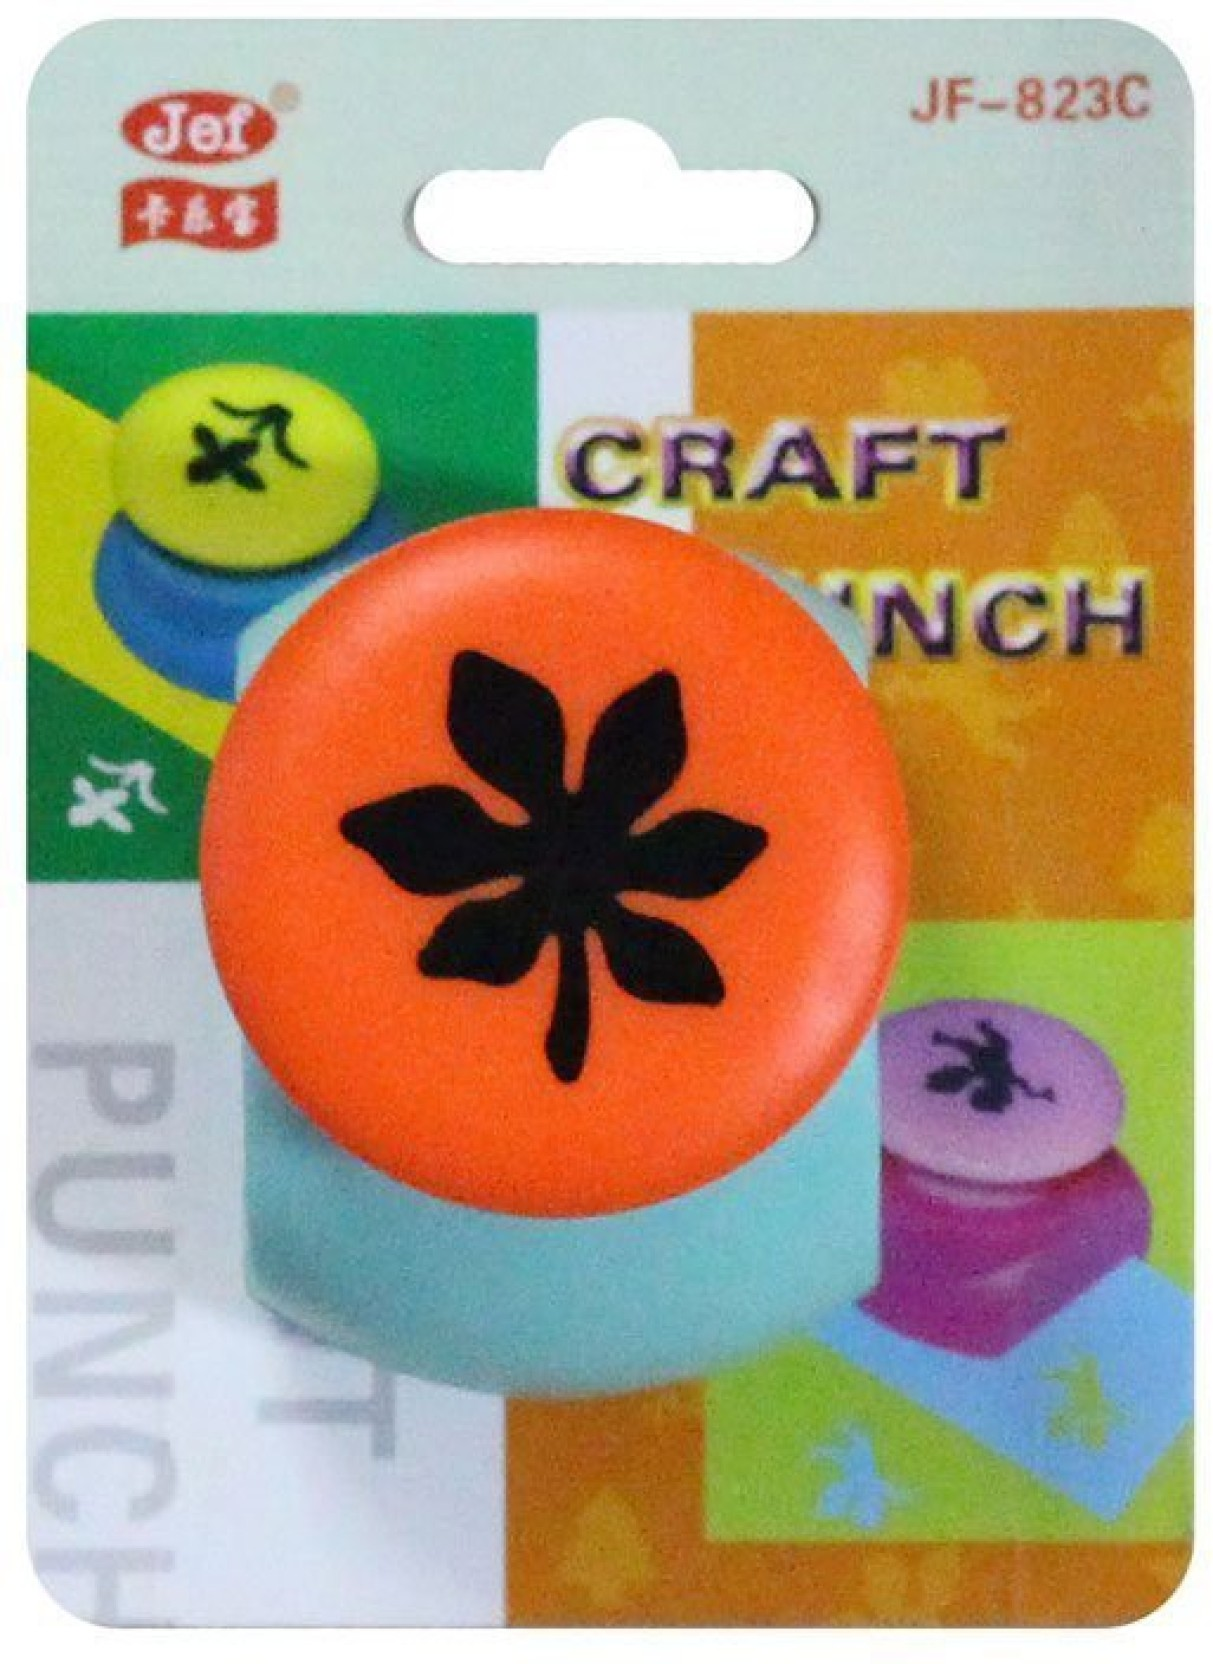 Shopat7 Craft Paper Punch For Art Craft Work For Card Making Jf